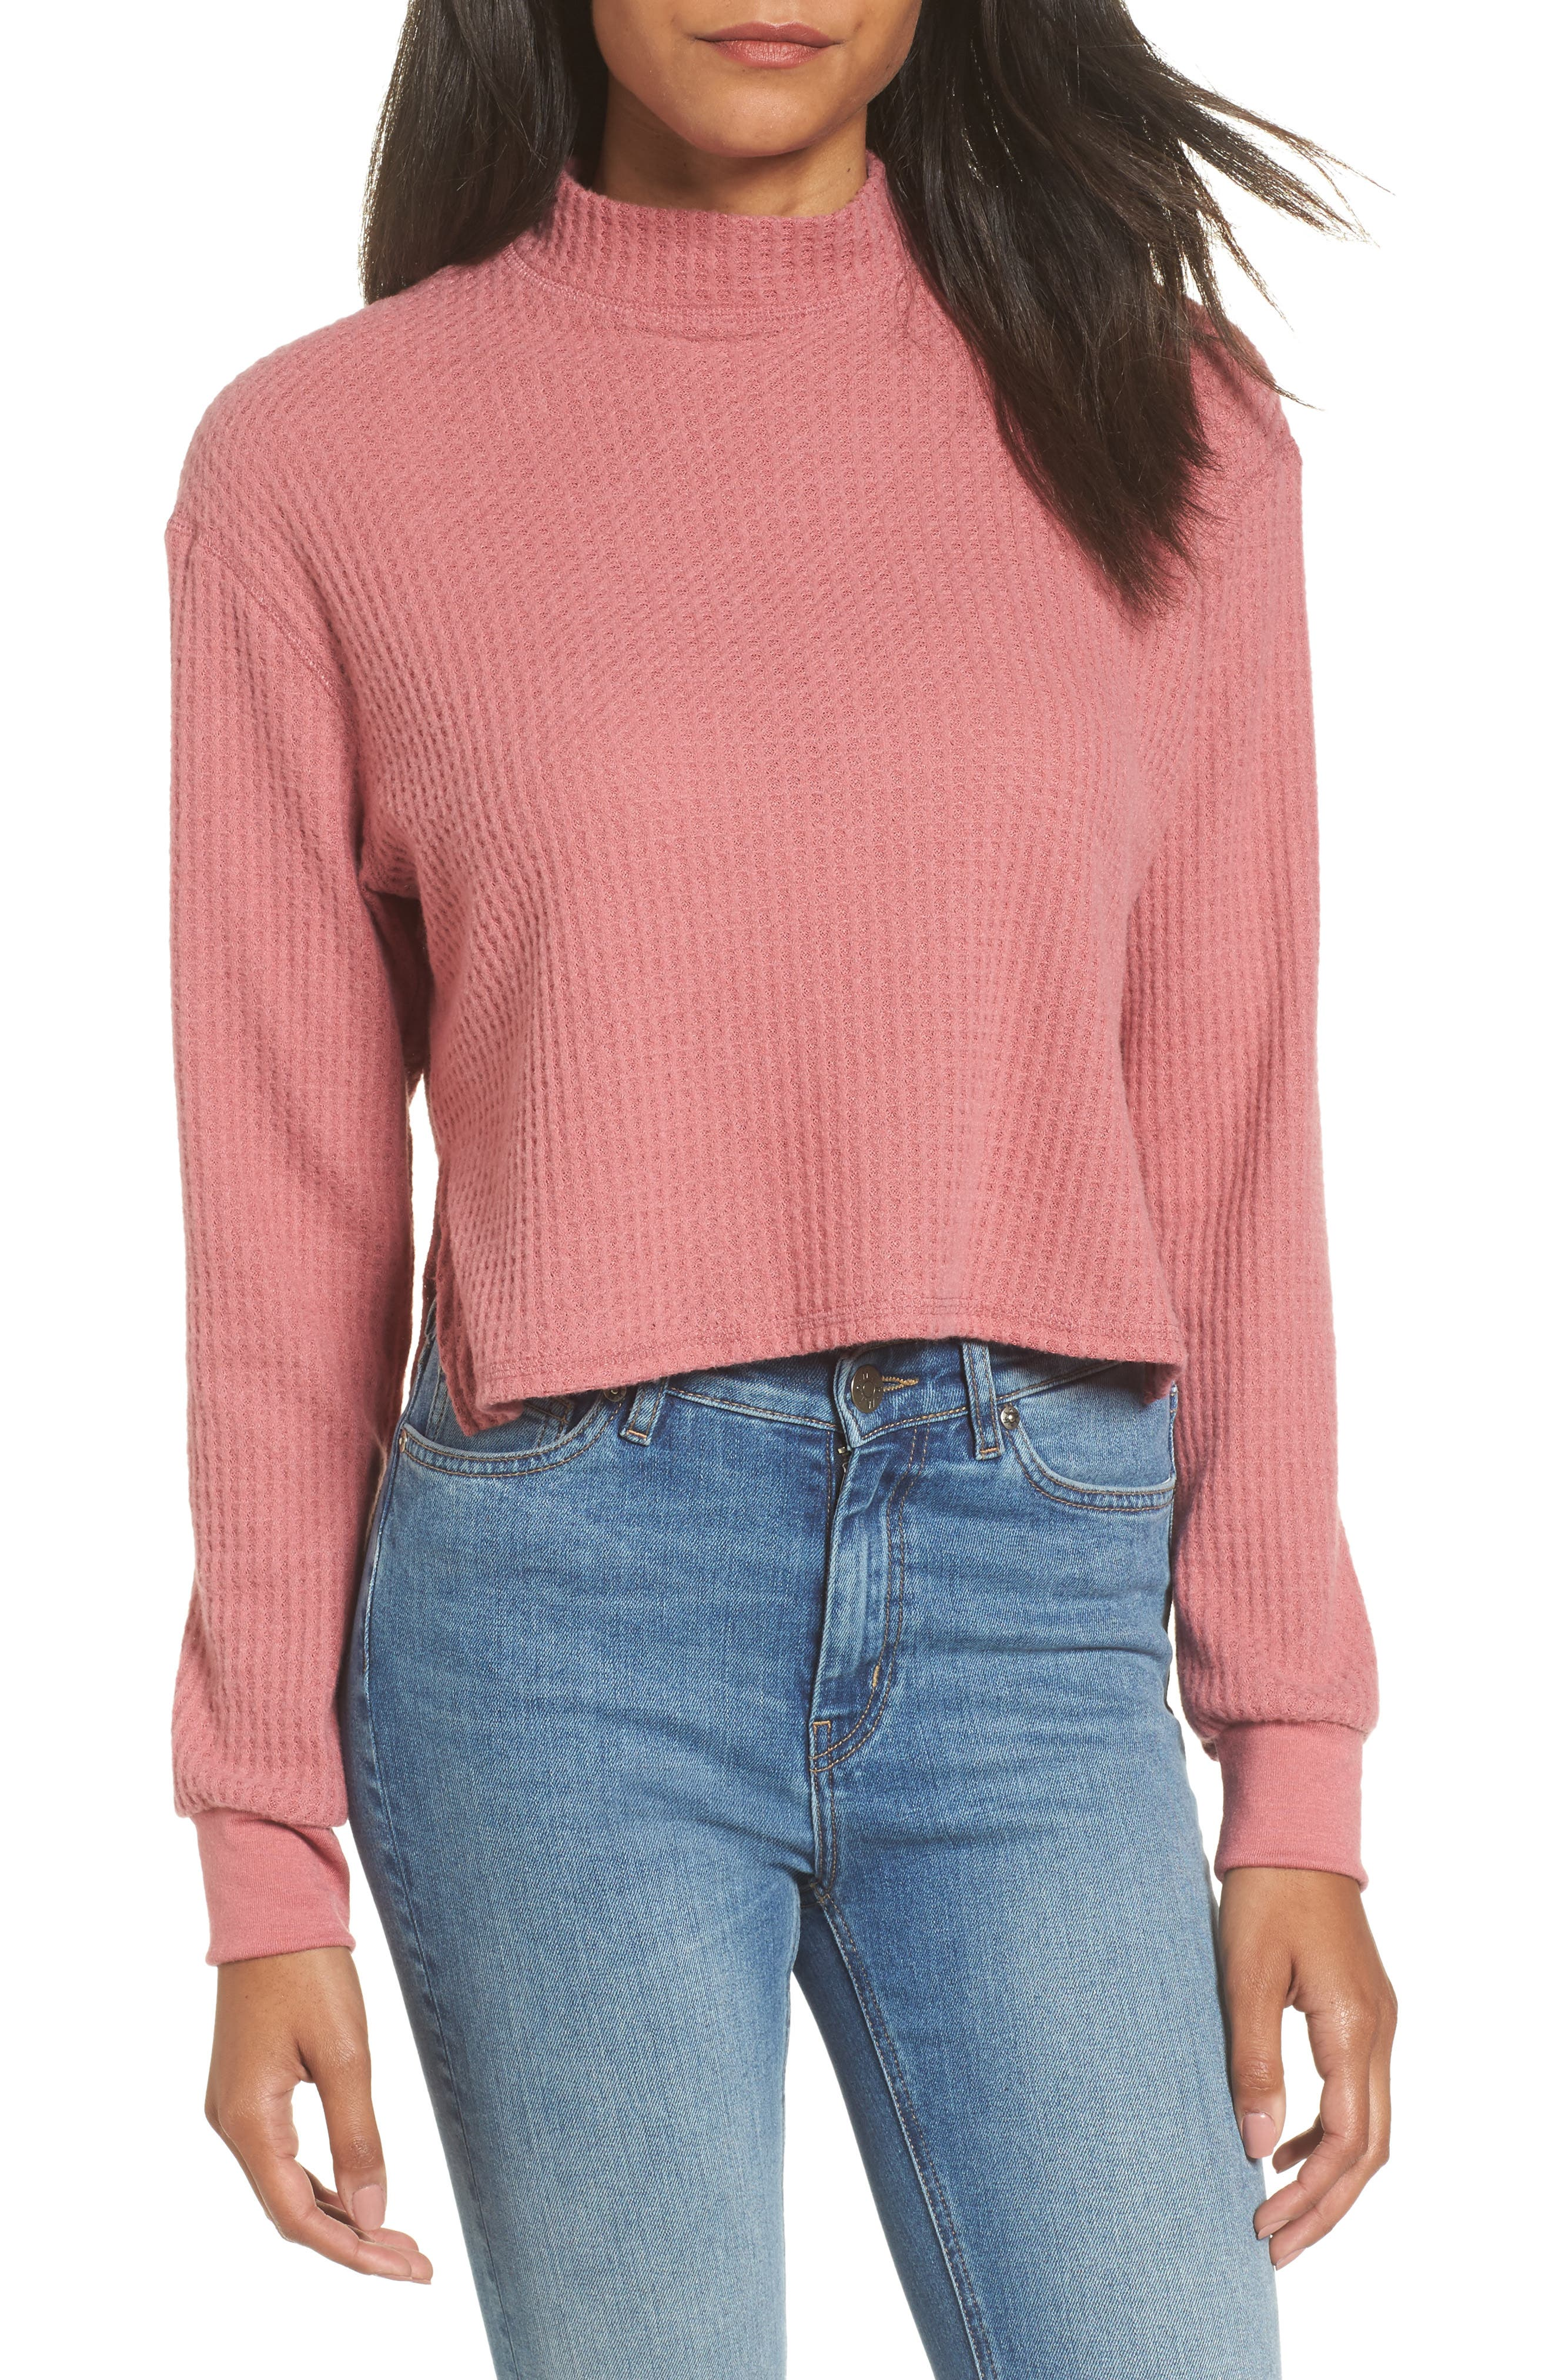 PST by Project Social T Thermal Crop Top